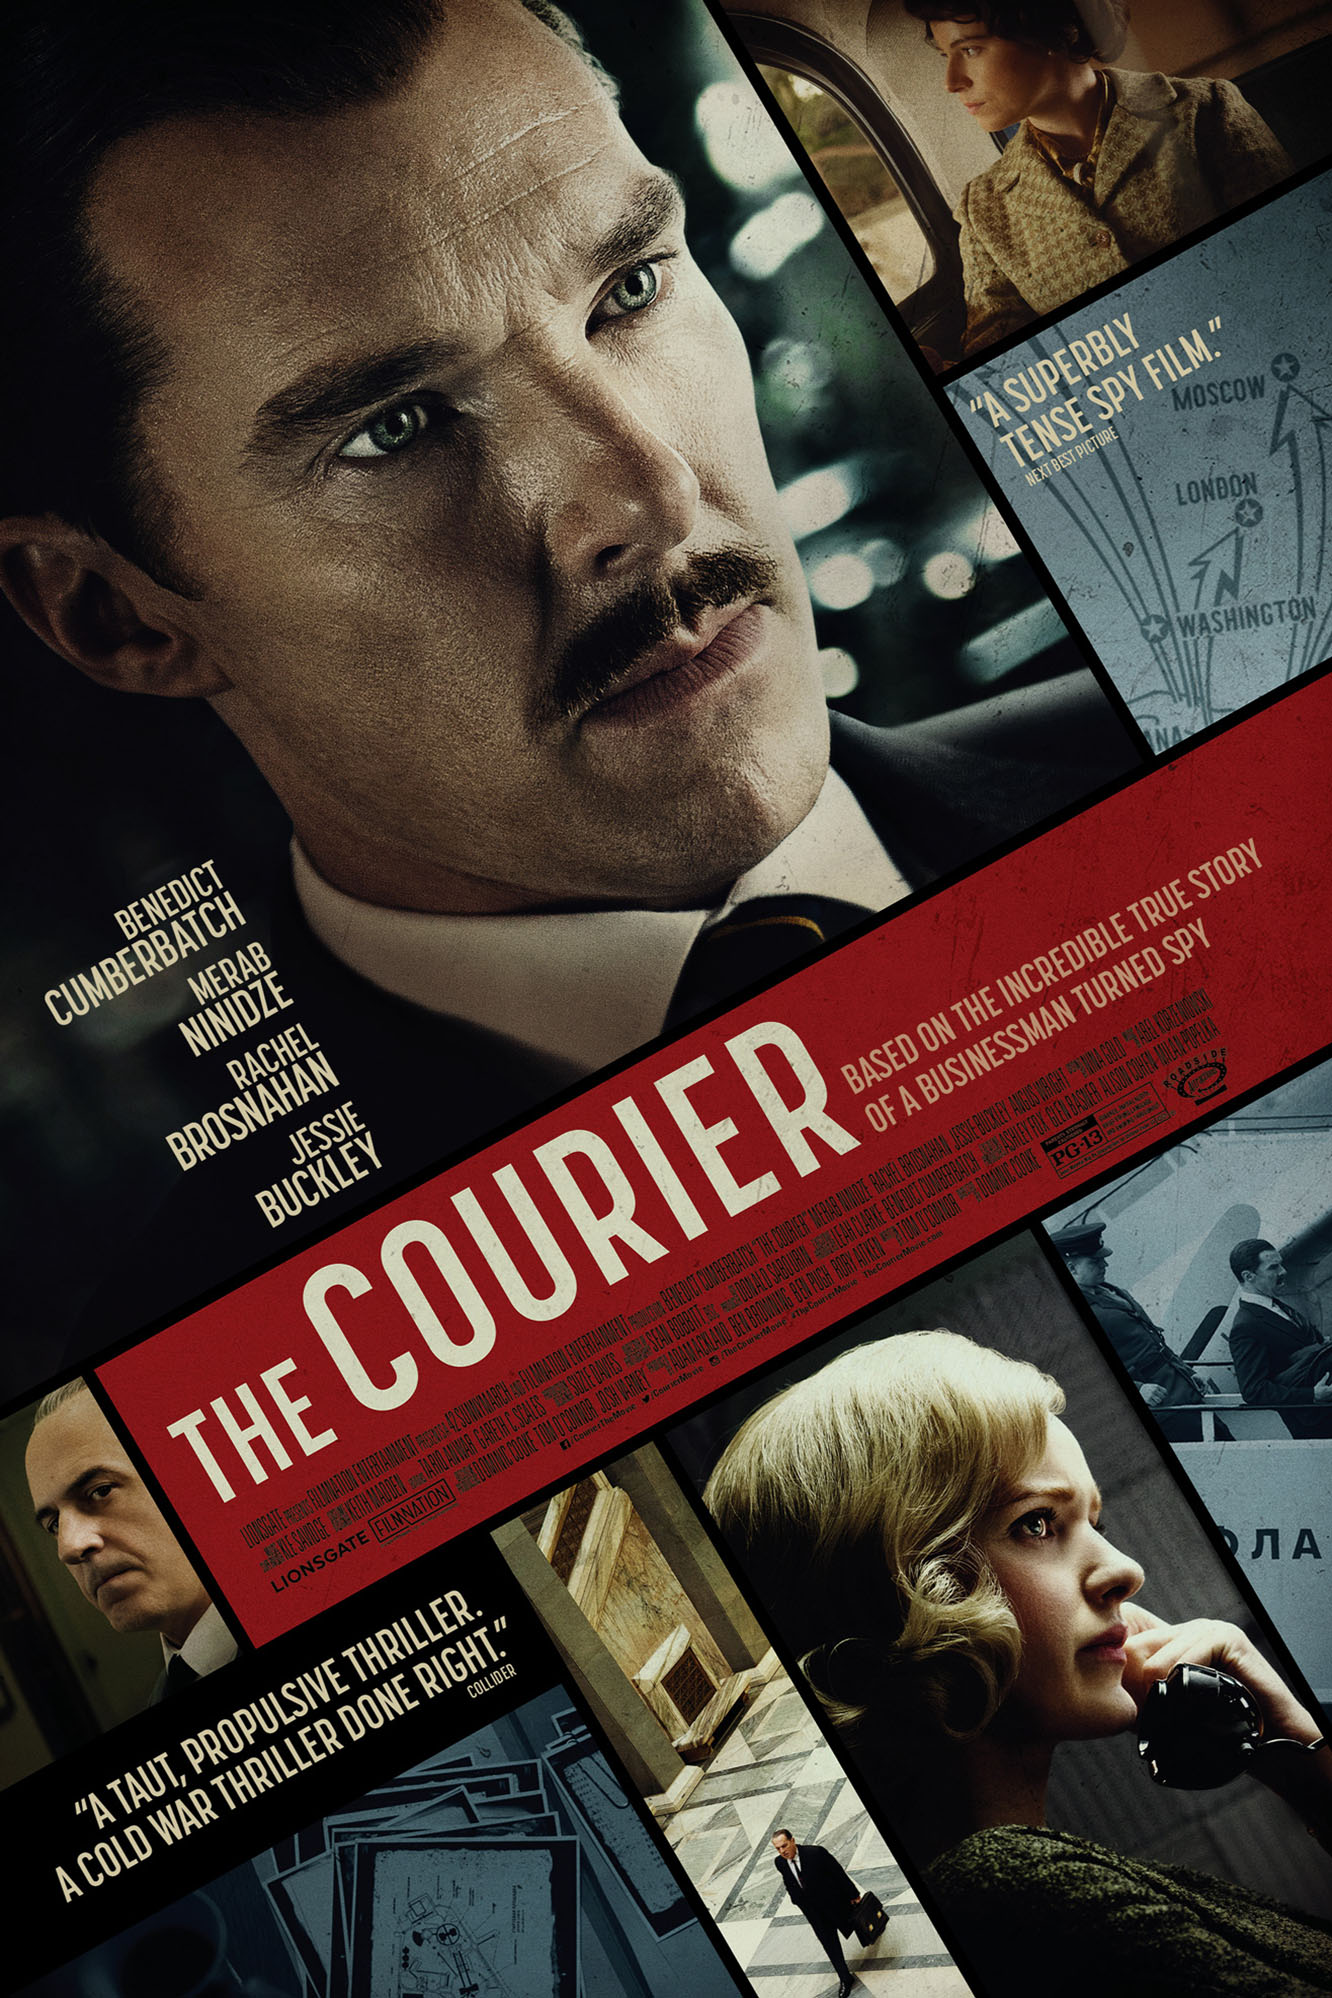 Still of The Courier